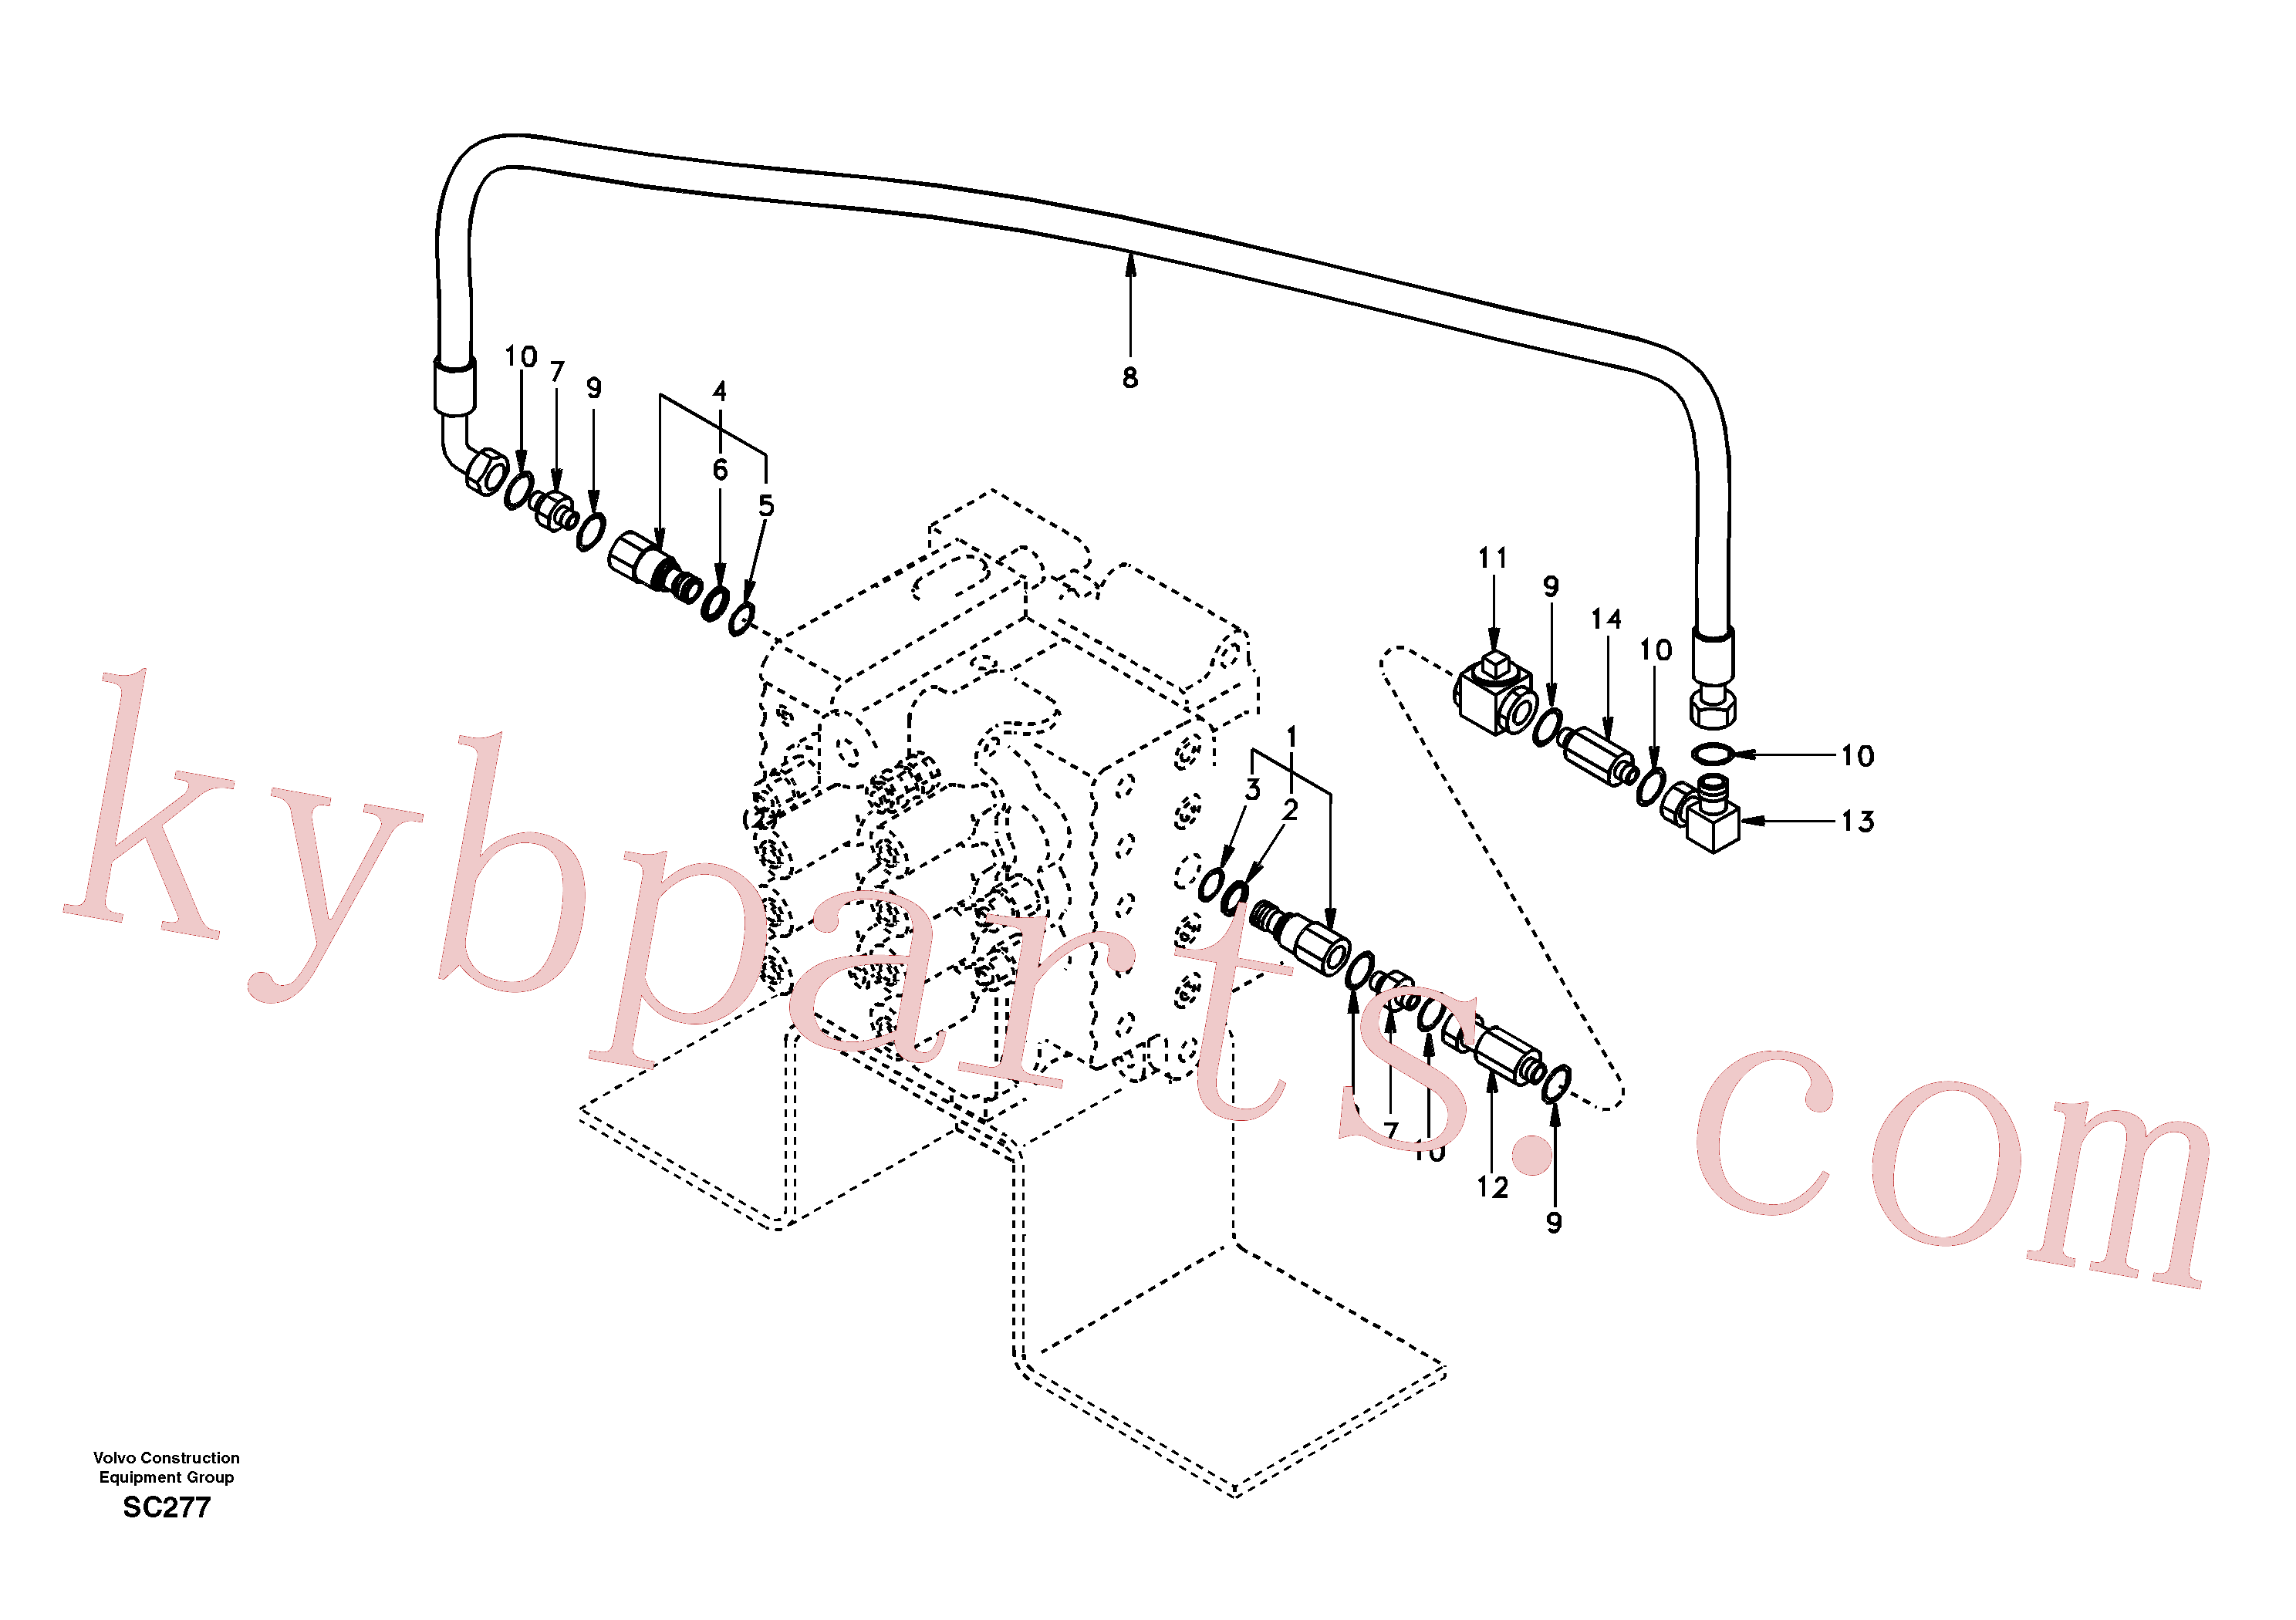 SA9403-04619 for Volvo Working hydraulic, hammer and shear for 2nd pump flow(SC277 assembly)